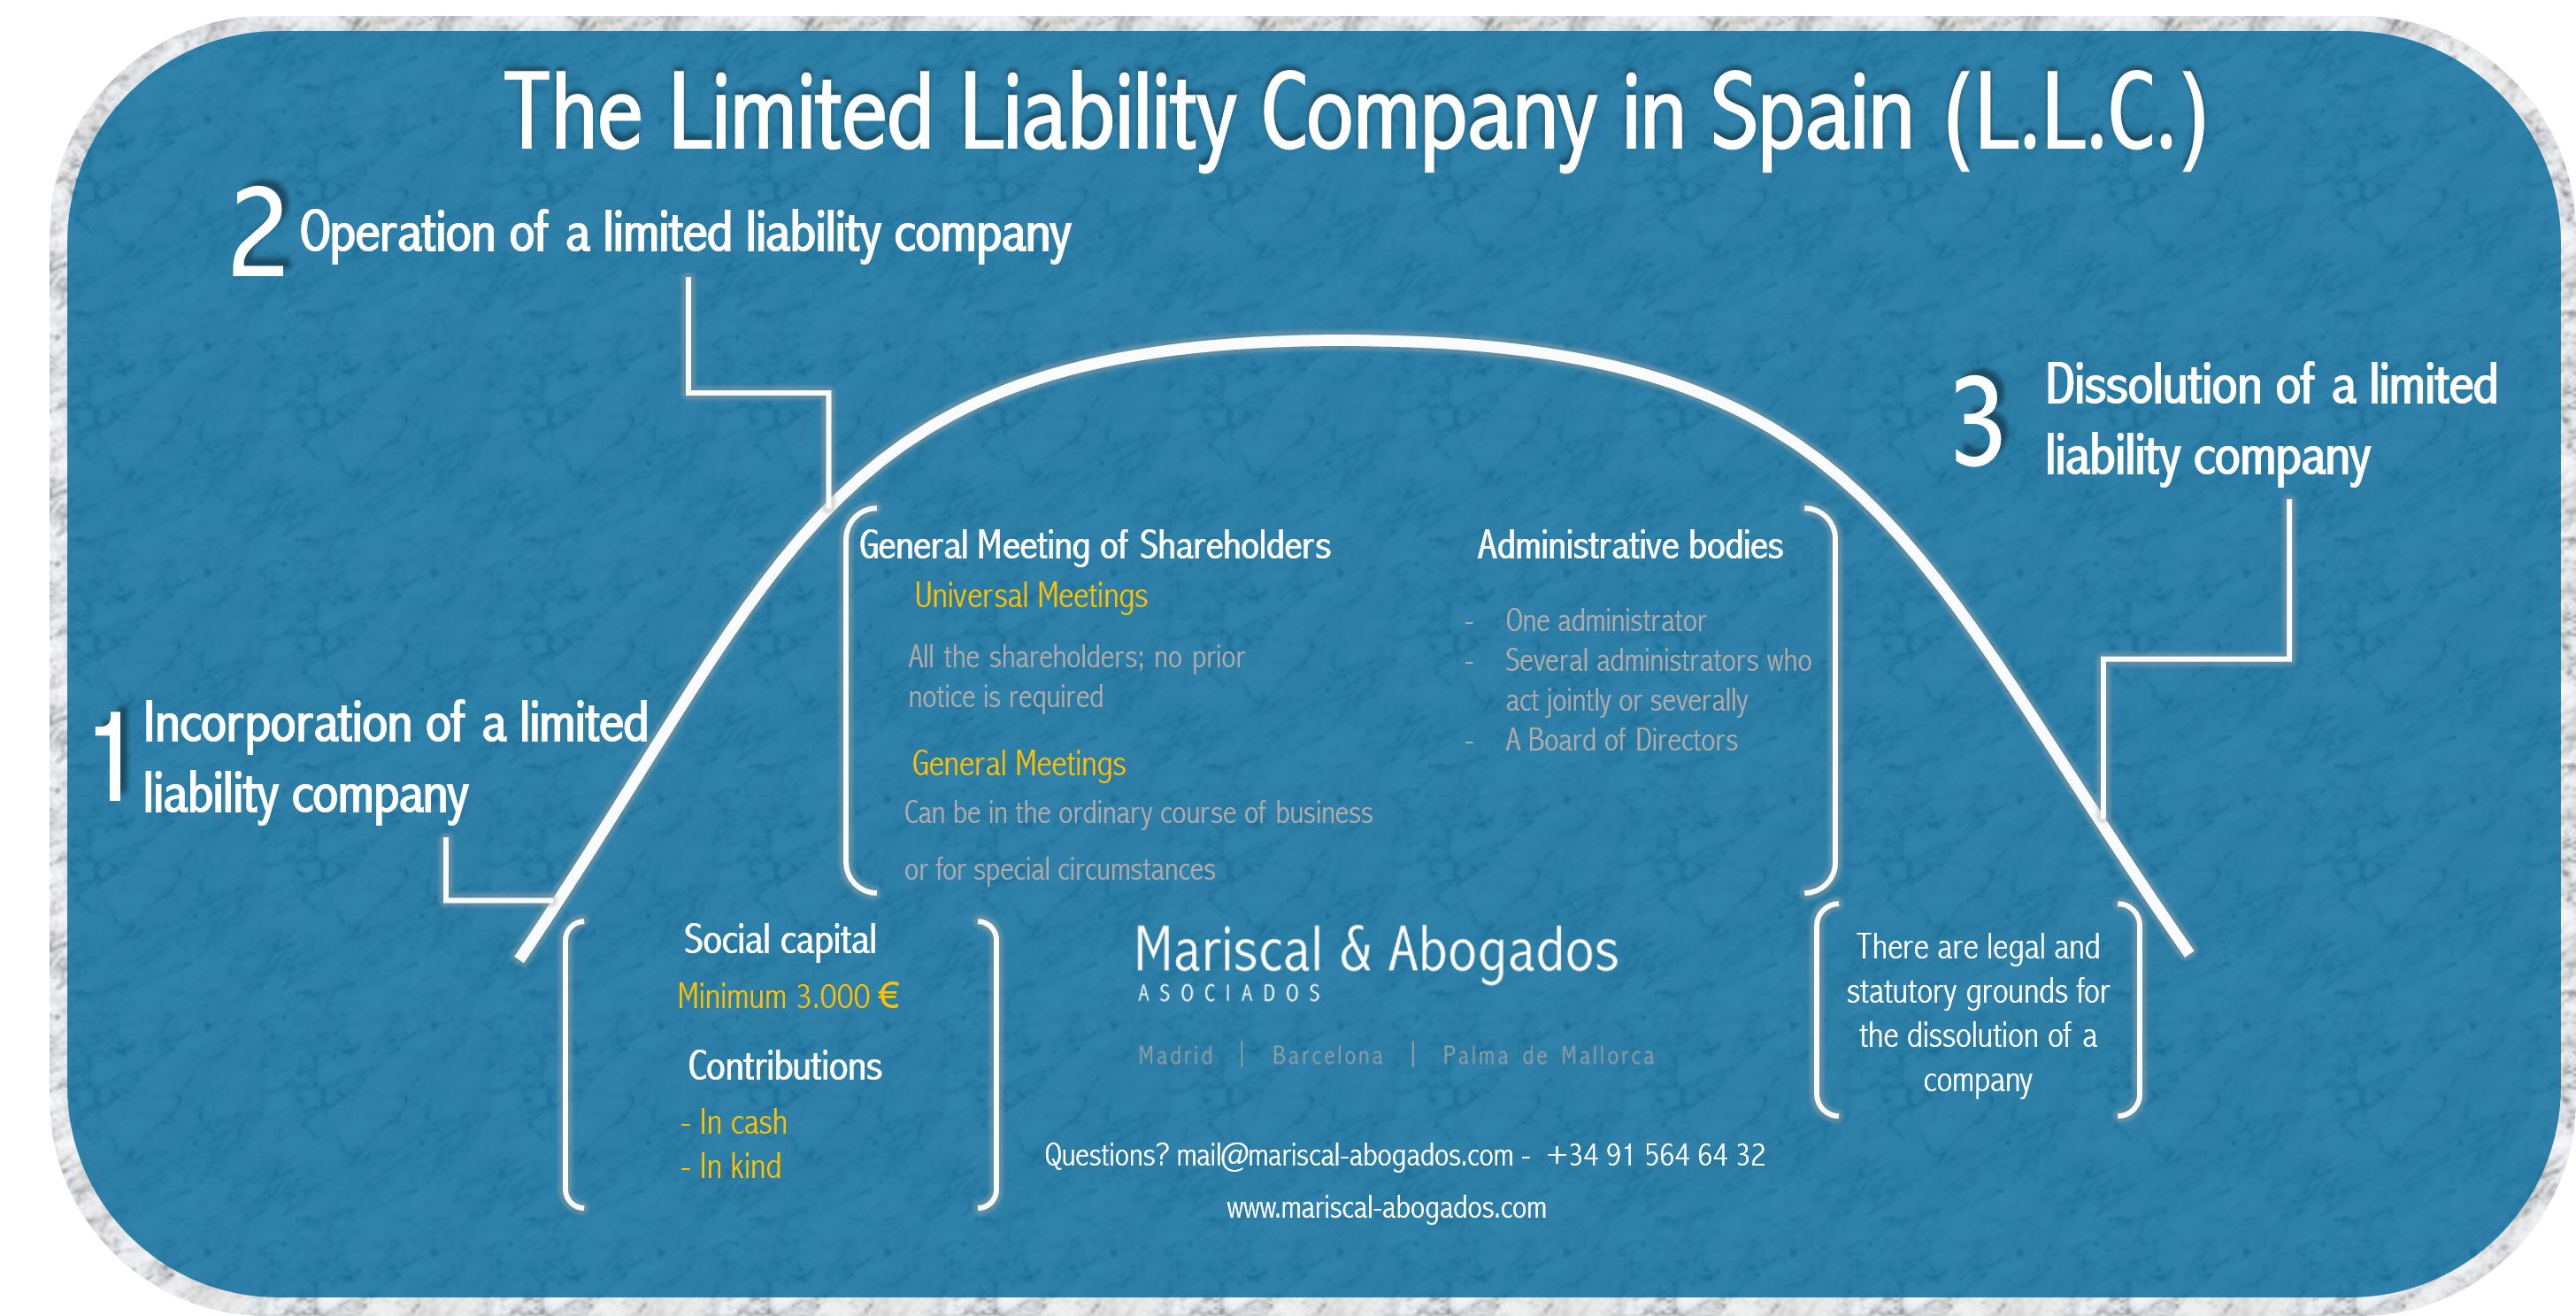 Practical Approach to the Limited Liability Company in Spain (L.L.C.)